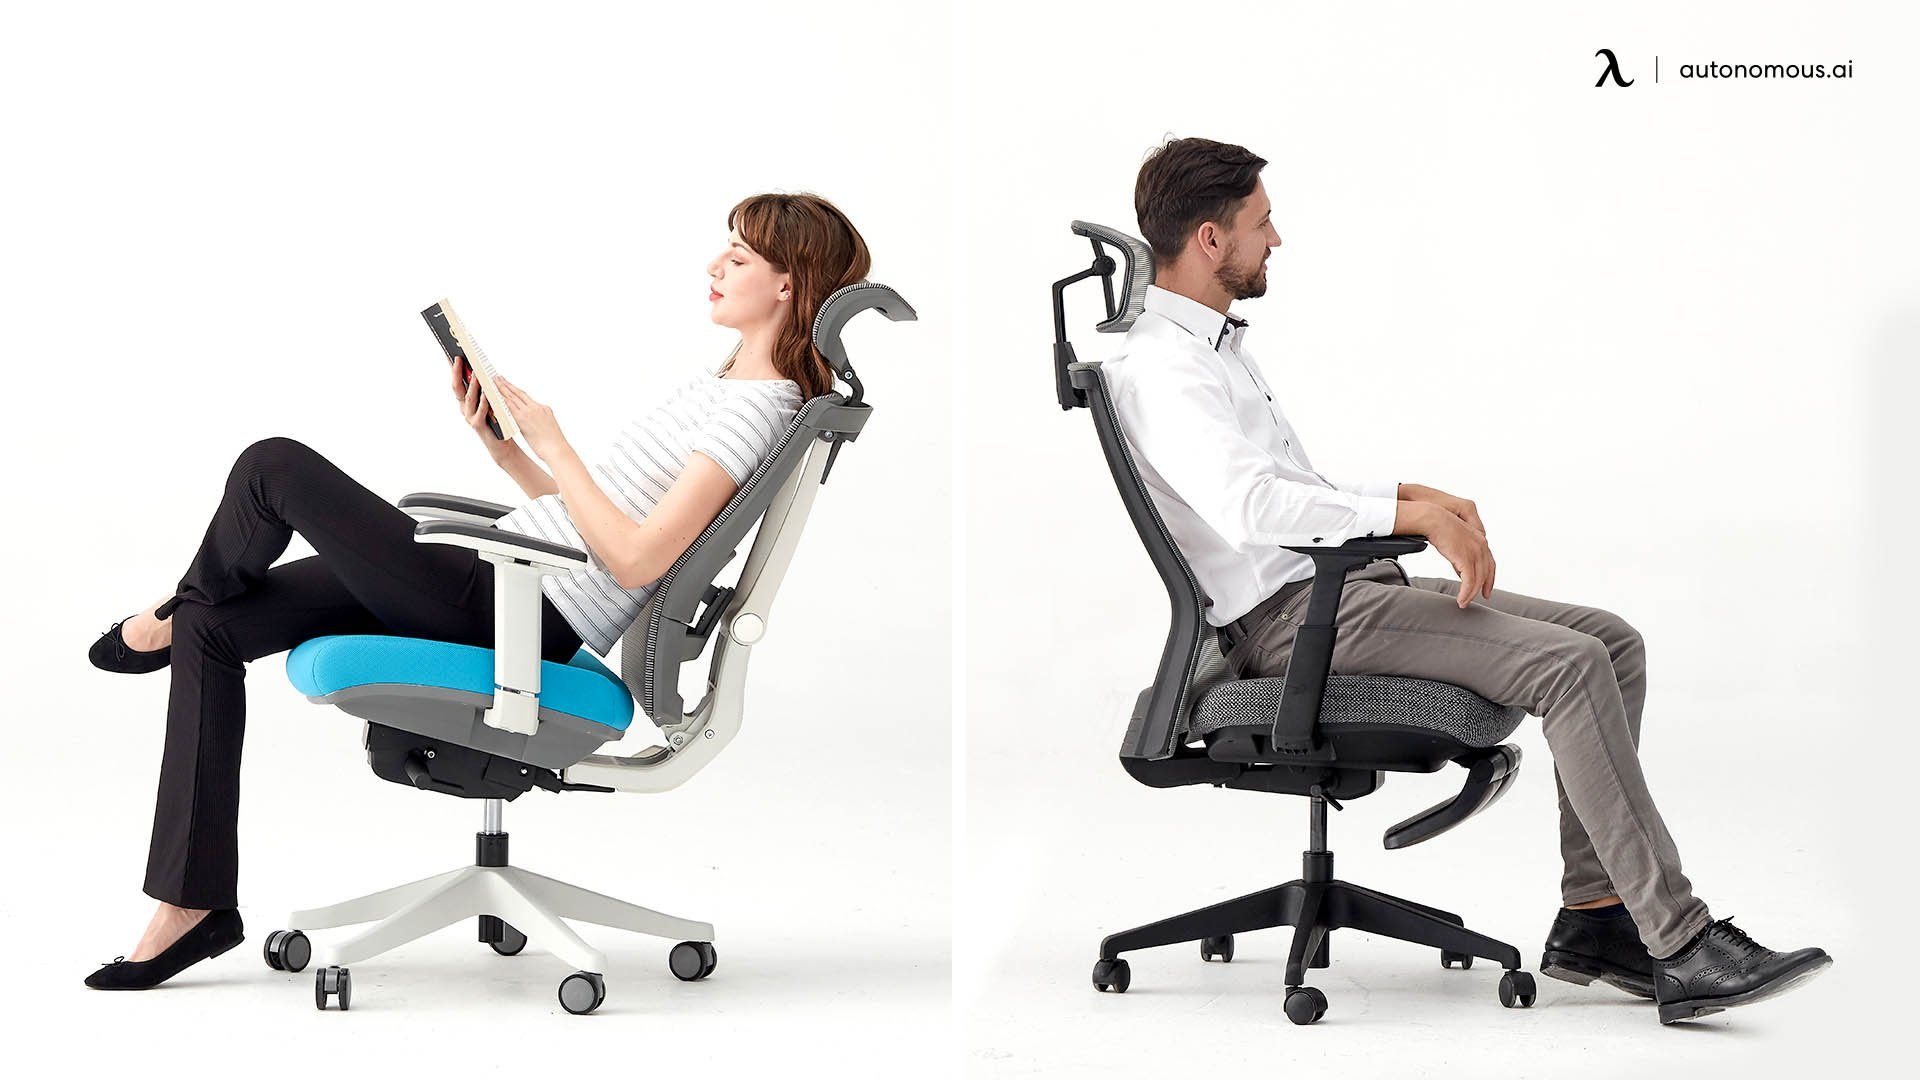 Ergonomic chair design for all users